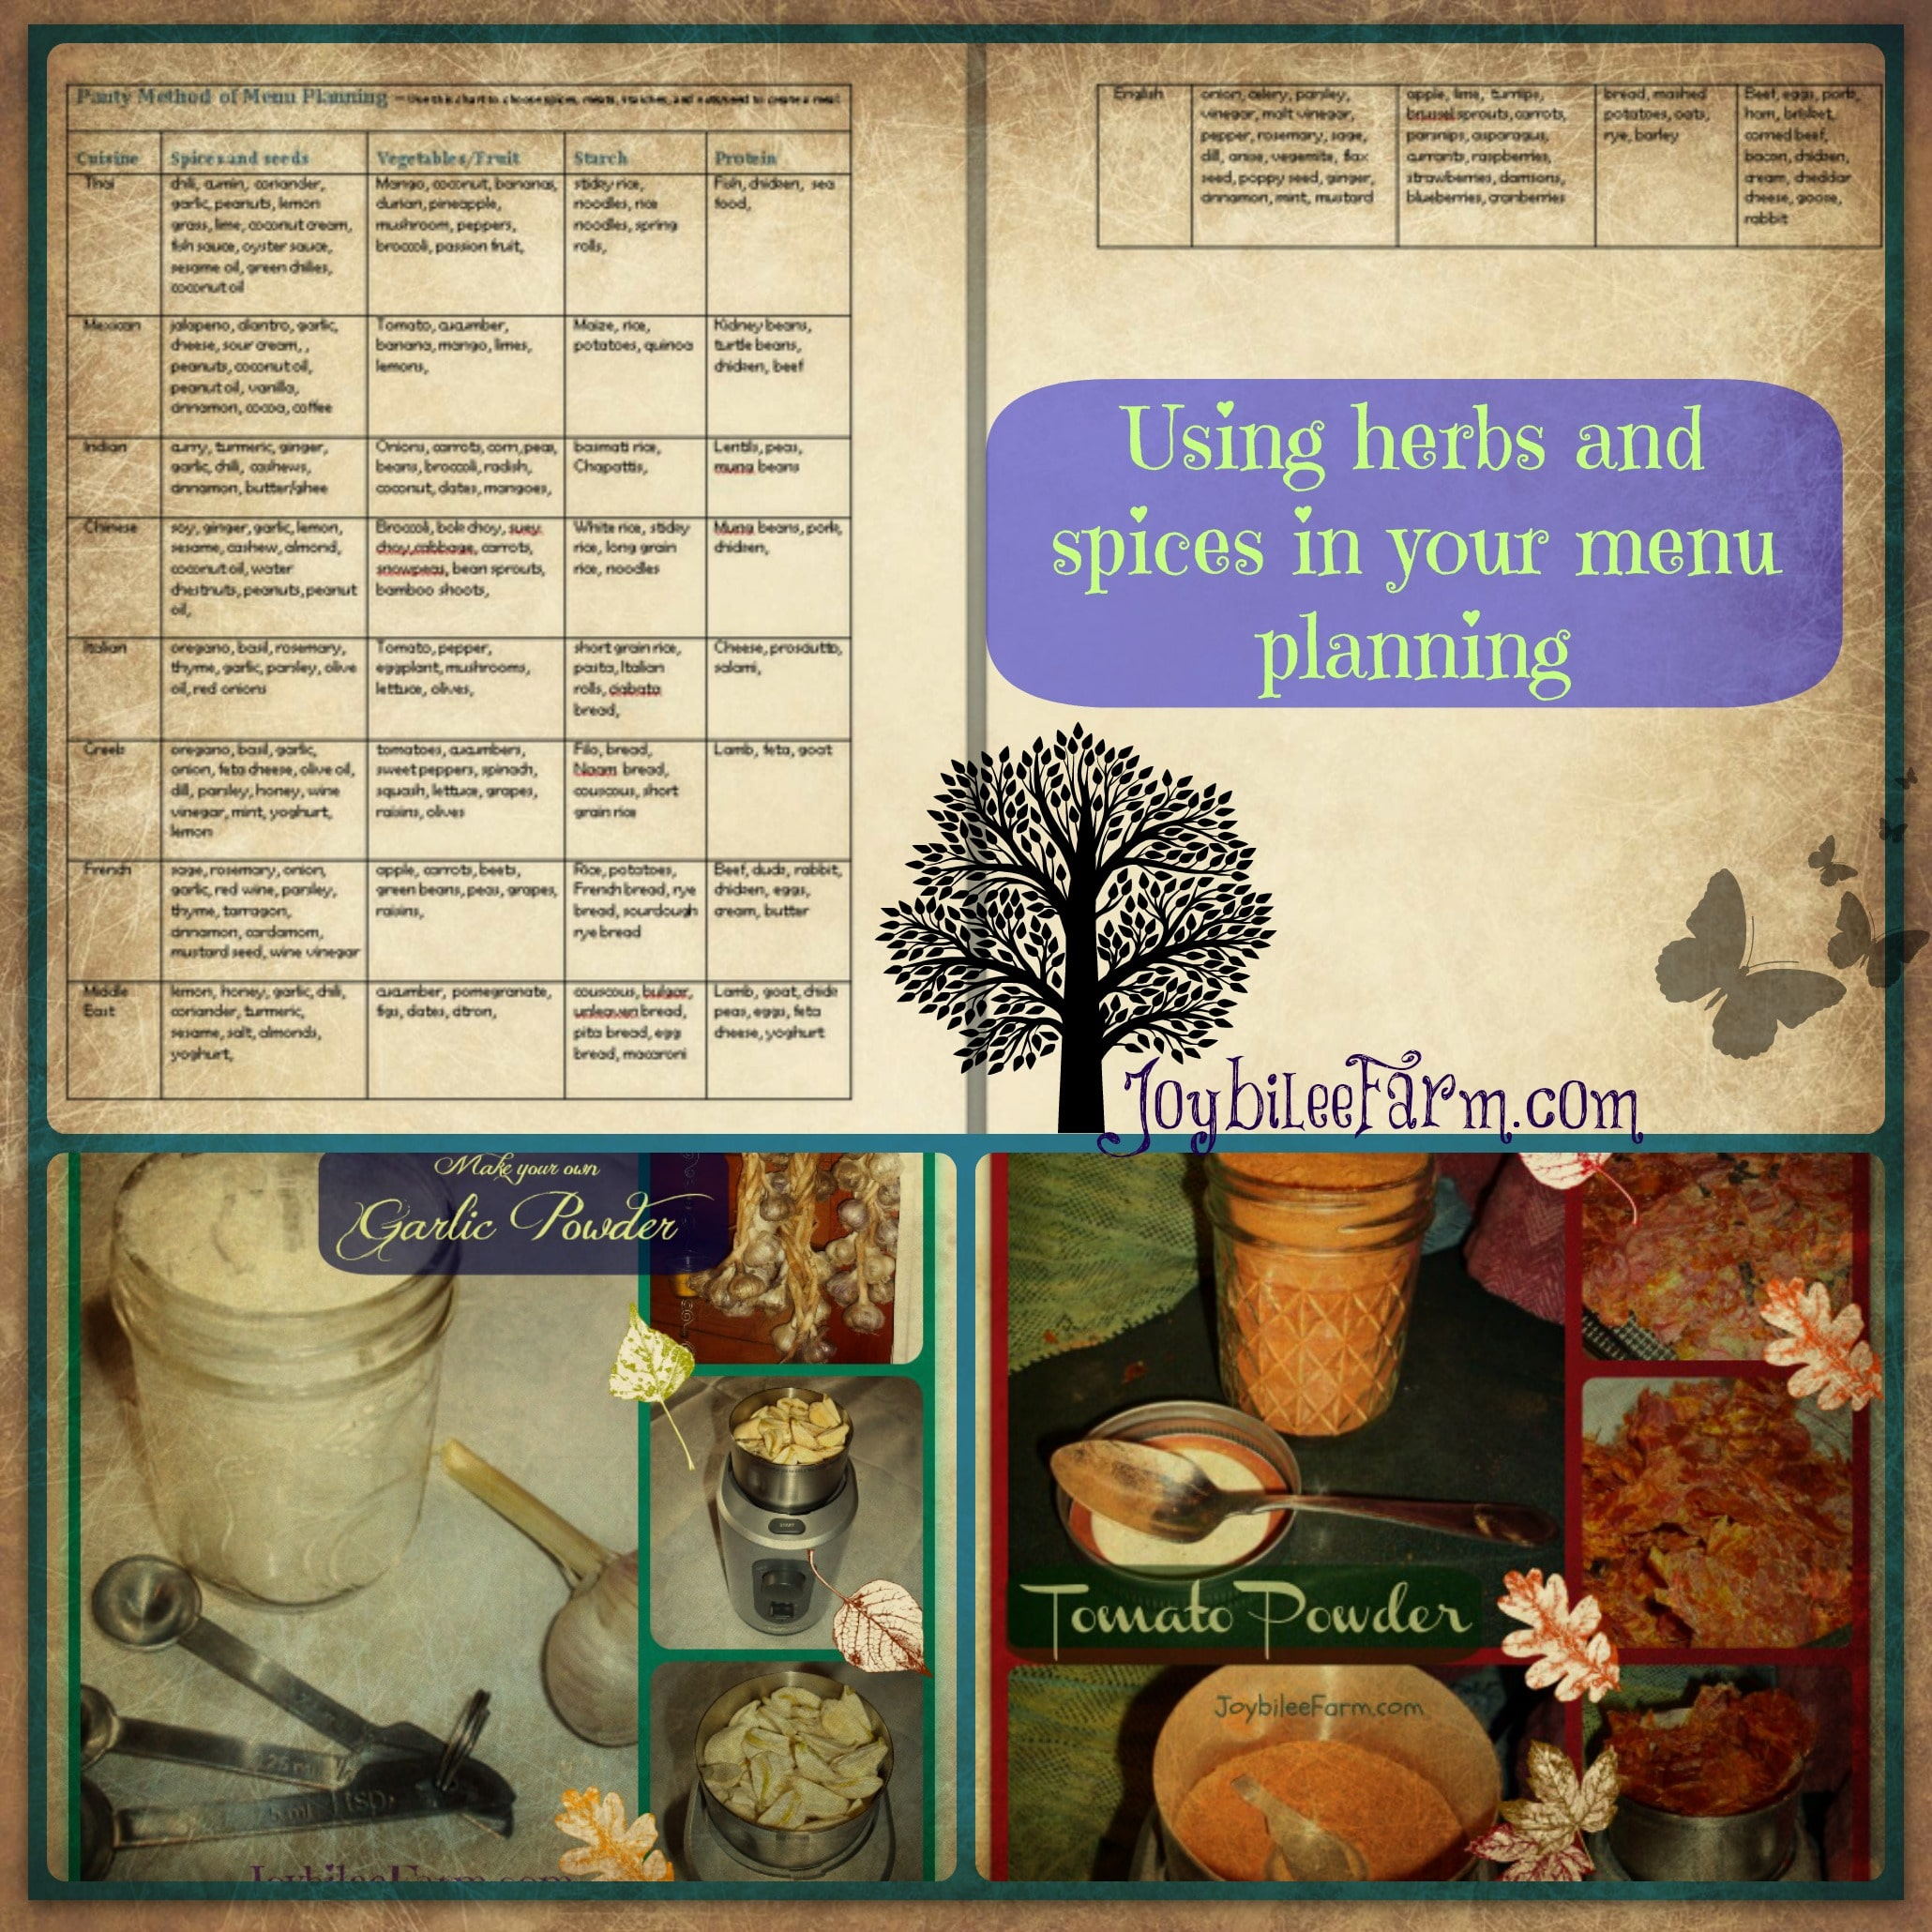 Menu Planning herbs and spices